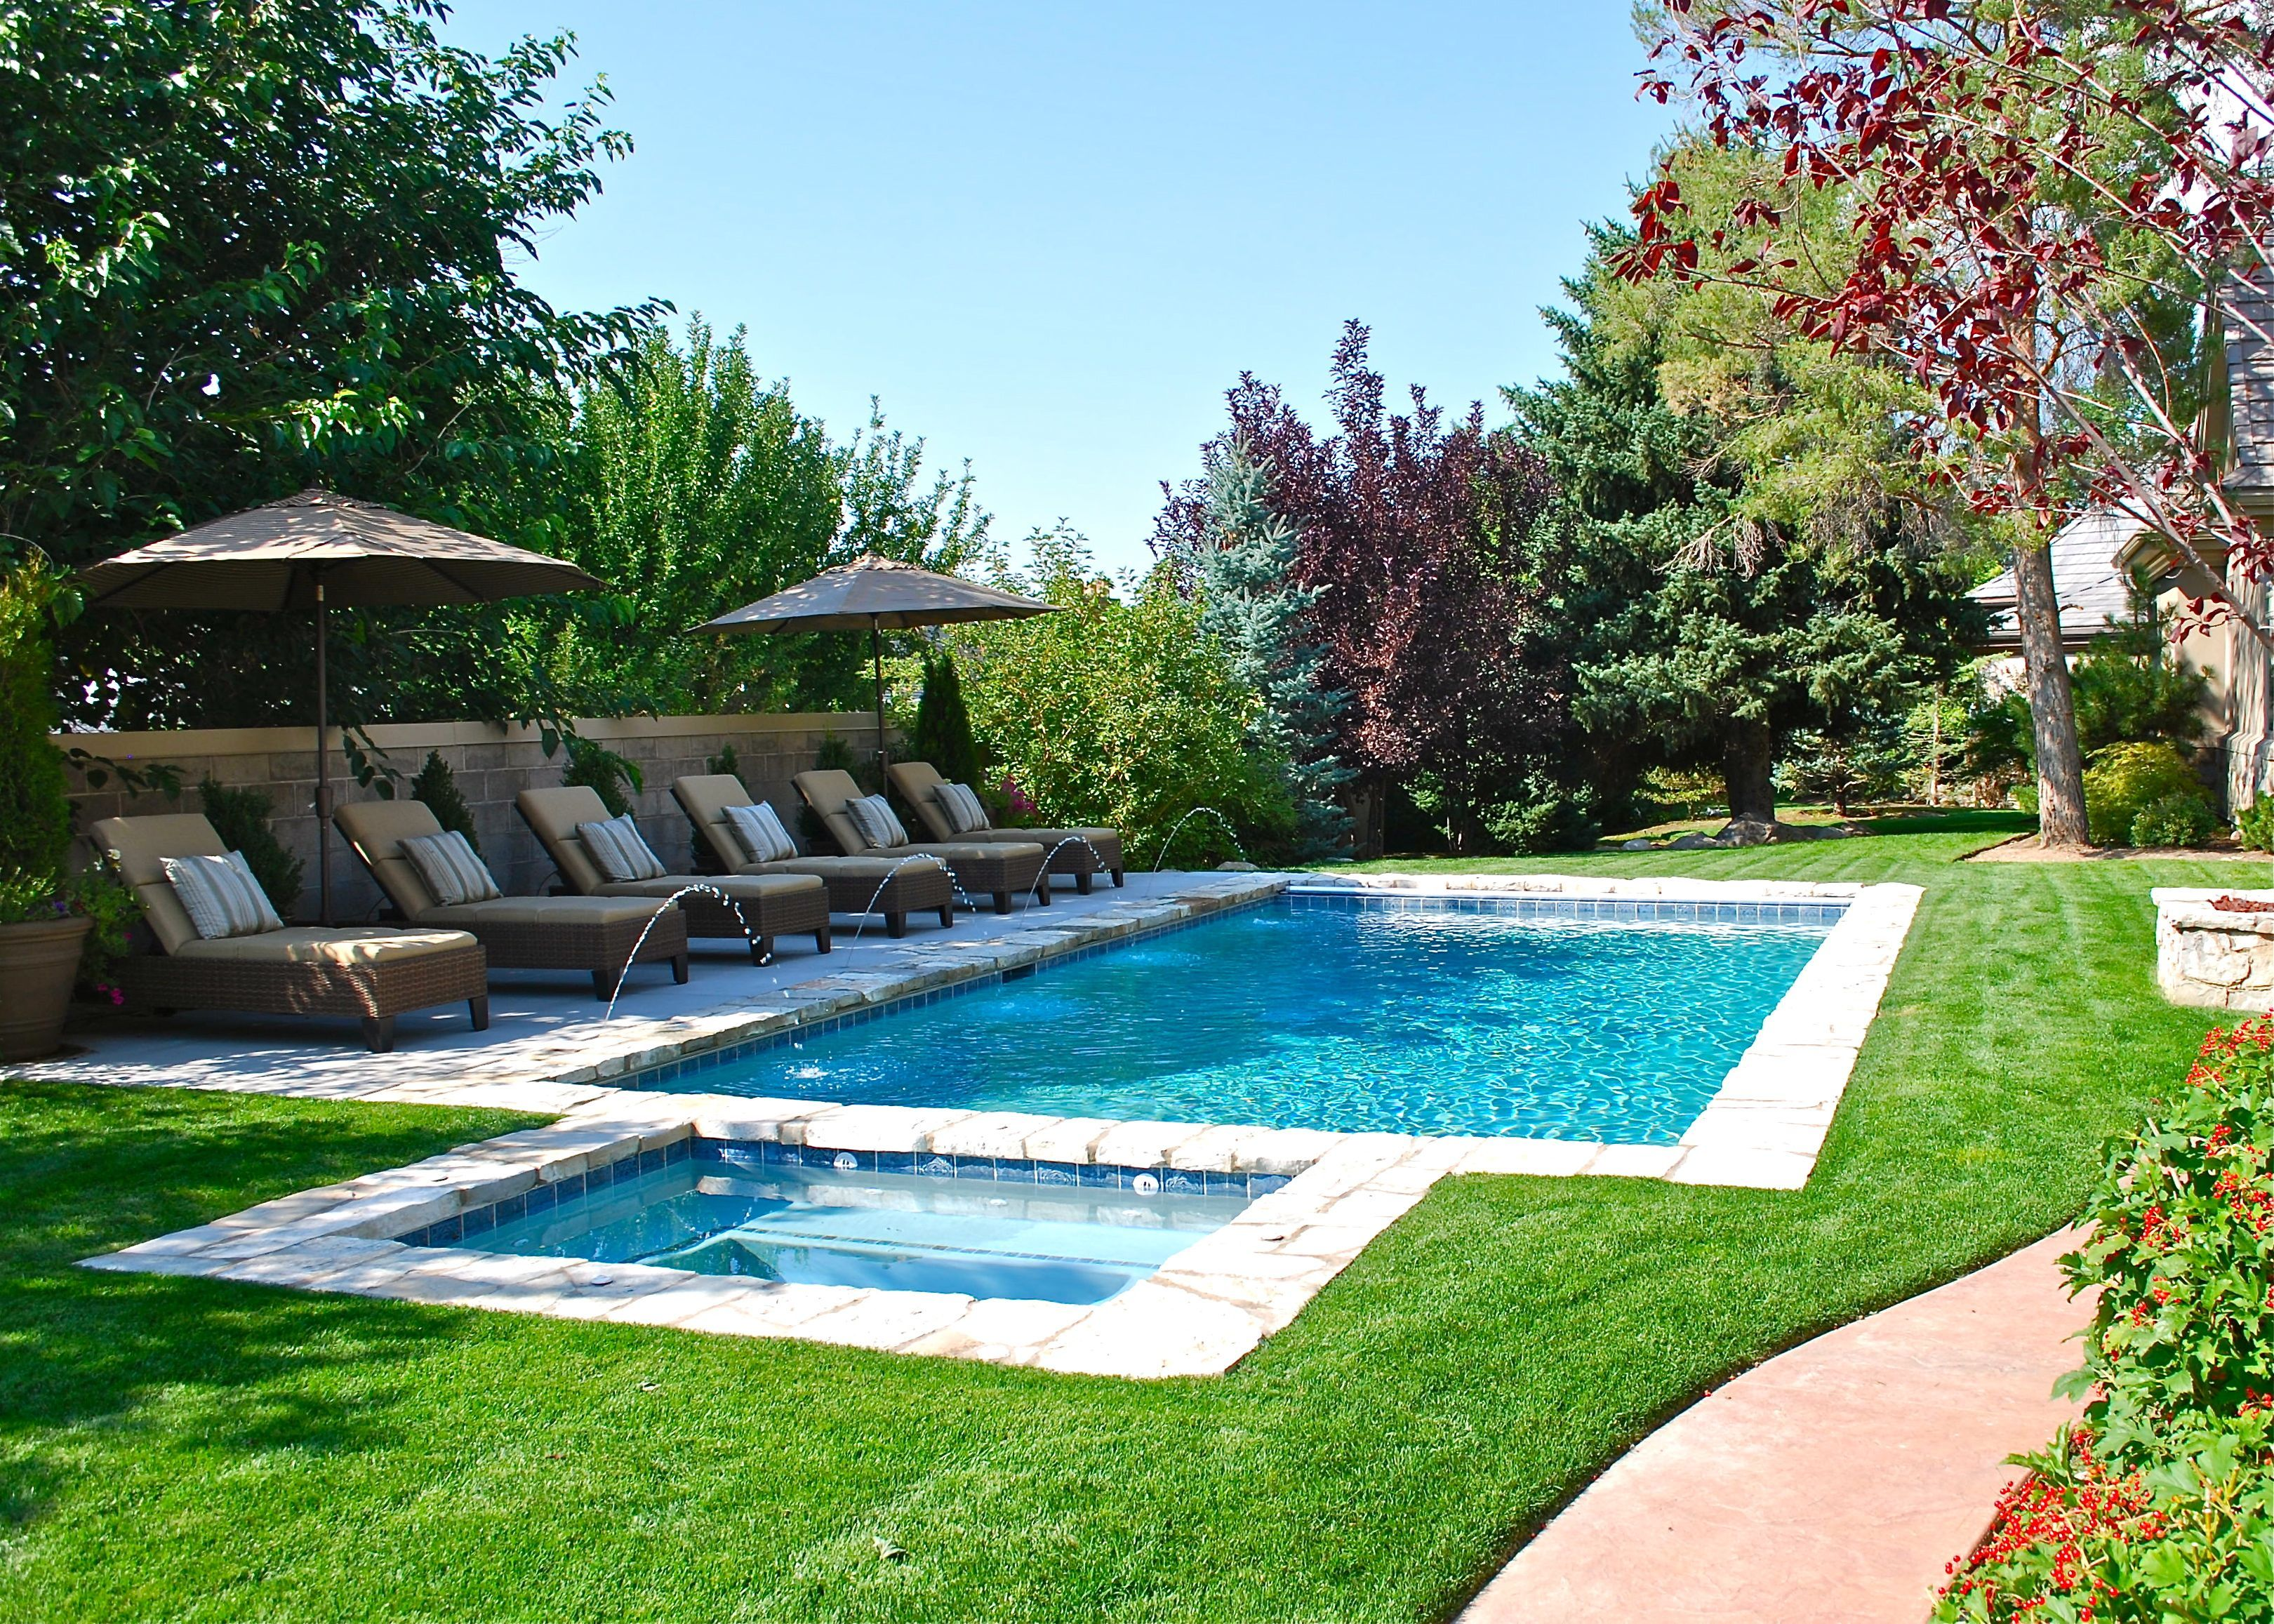 backyard swimming pool with minimal decking. deckjets and ...